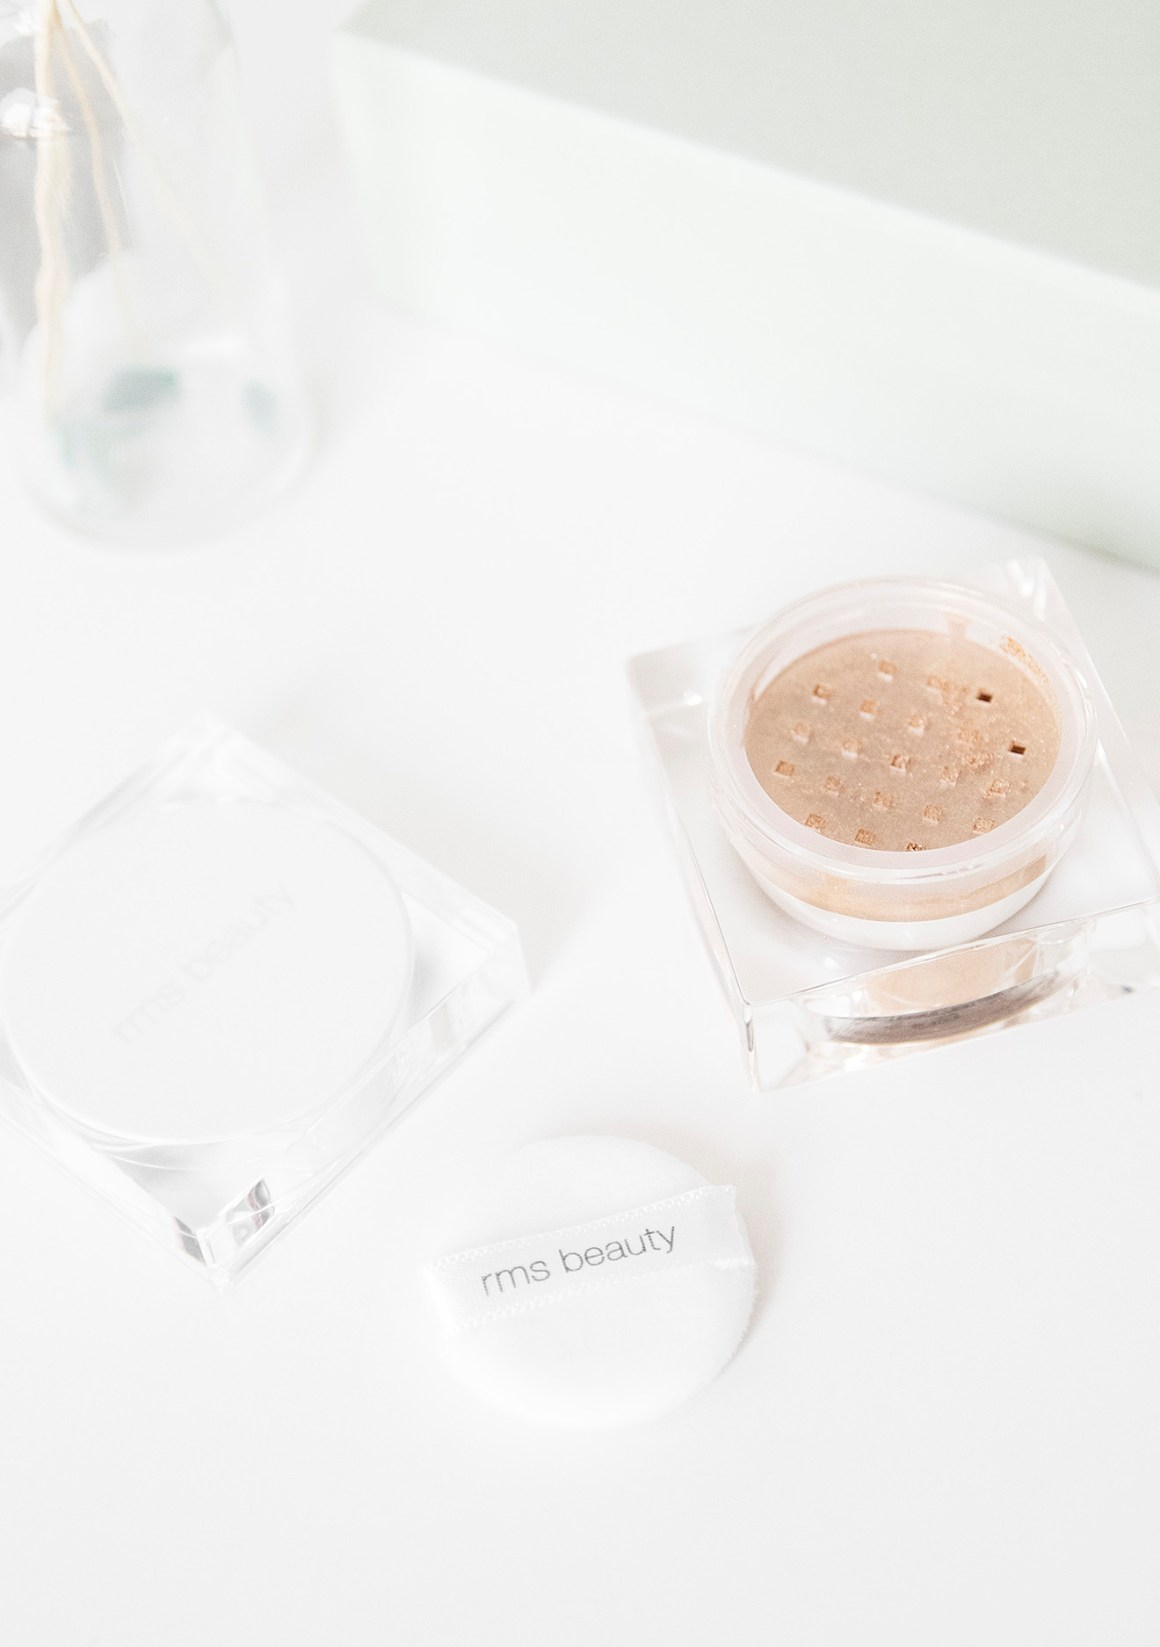 RMS Beauty Living Glow Face Body Powder